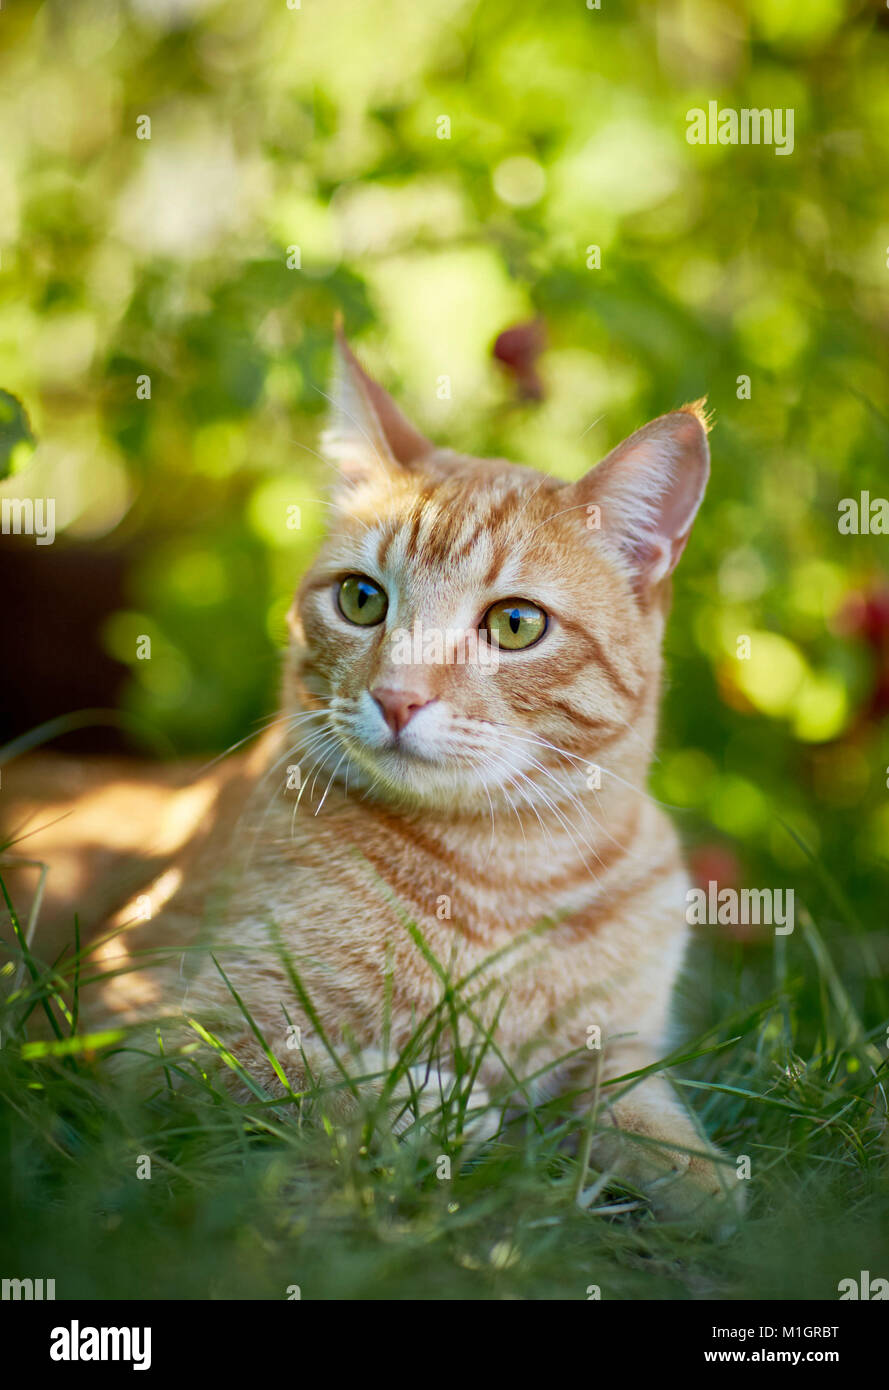 Domestic cat. Red tabby adult lying in grass. Germany. Stock Photo